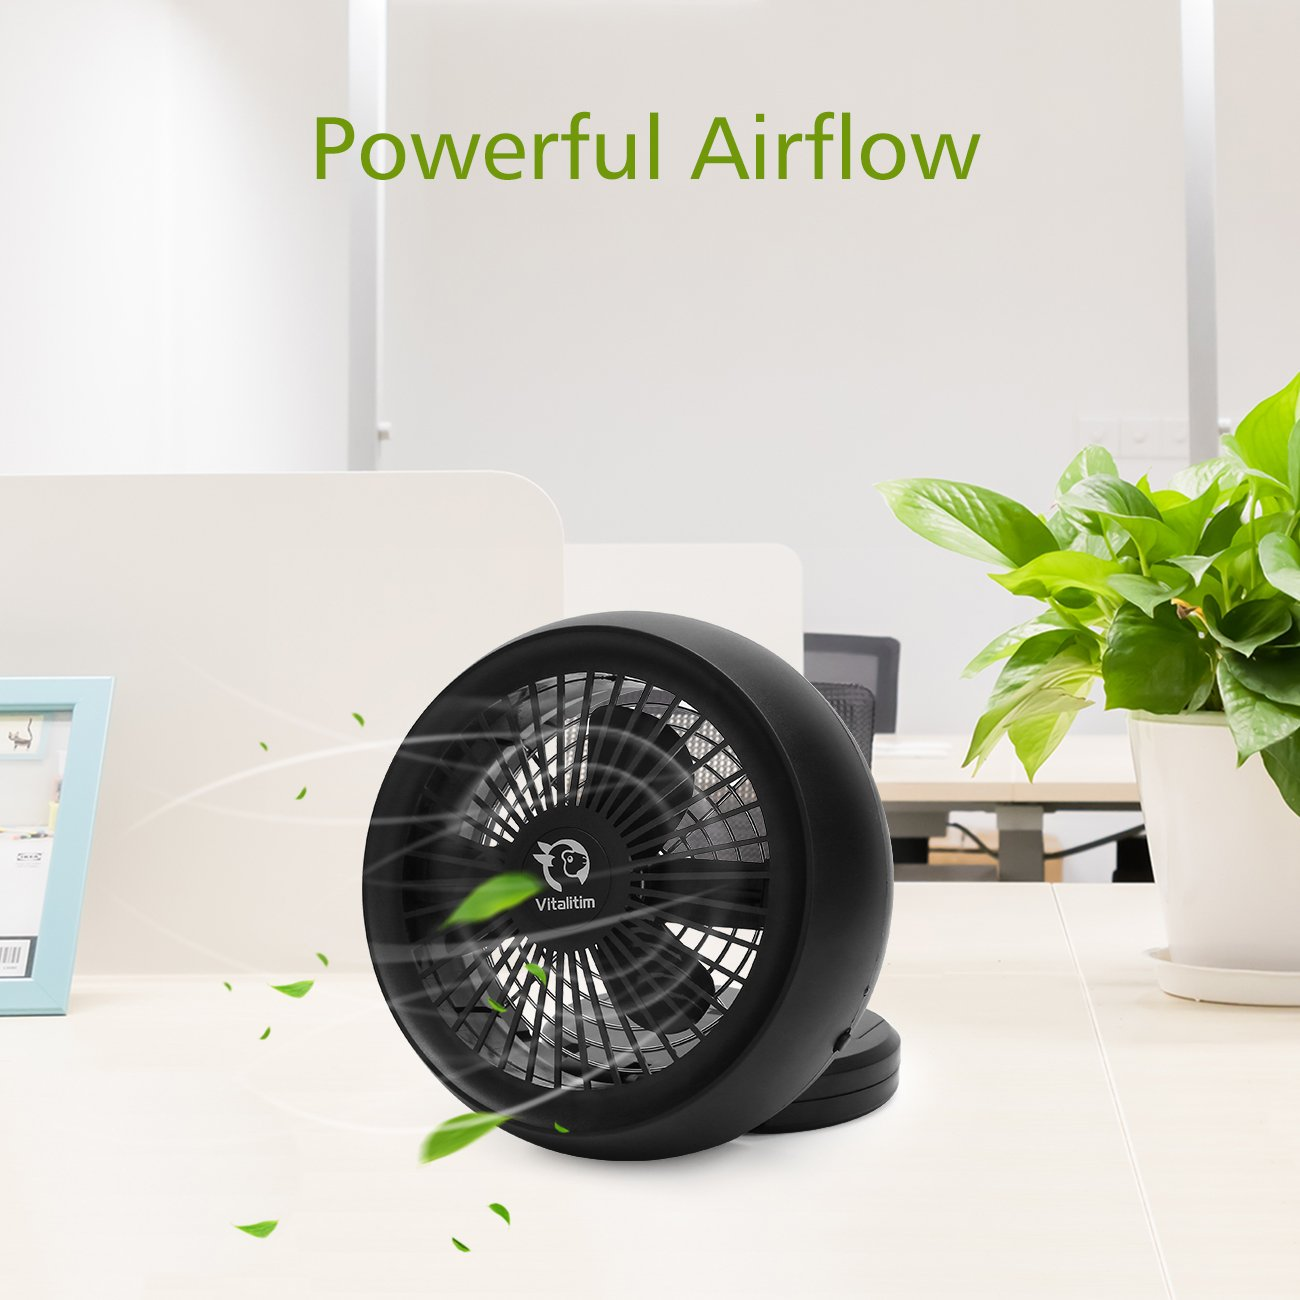 Vitalitim Portable Mini USB Cooling Fan, Personal Desktop Table Fan for Office Room Outdoor Household Traveling, Dual Power Sources, Touch Control, Foldable Design, Quiet Operation, 6.5 Inch (Black)